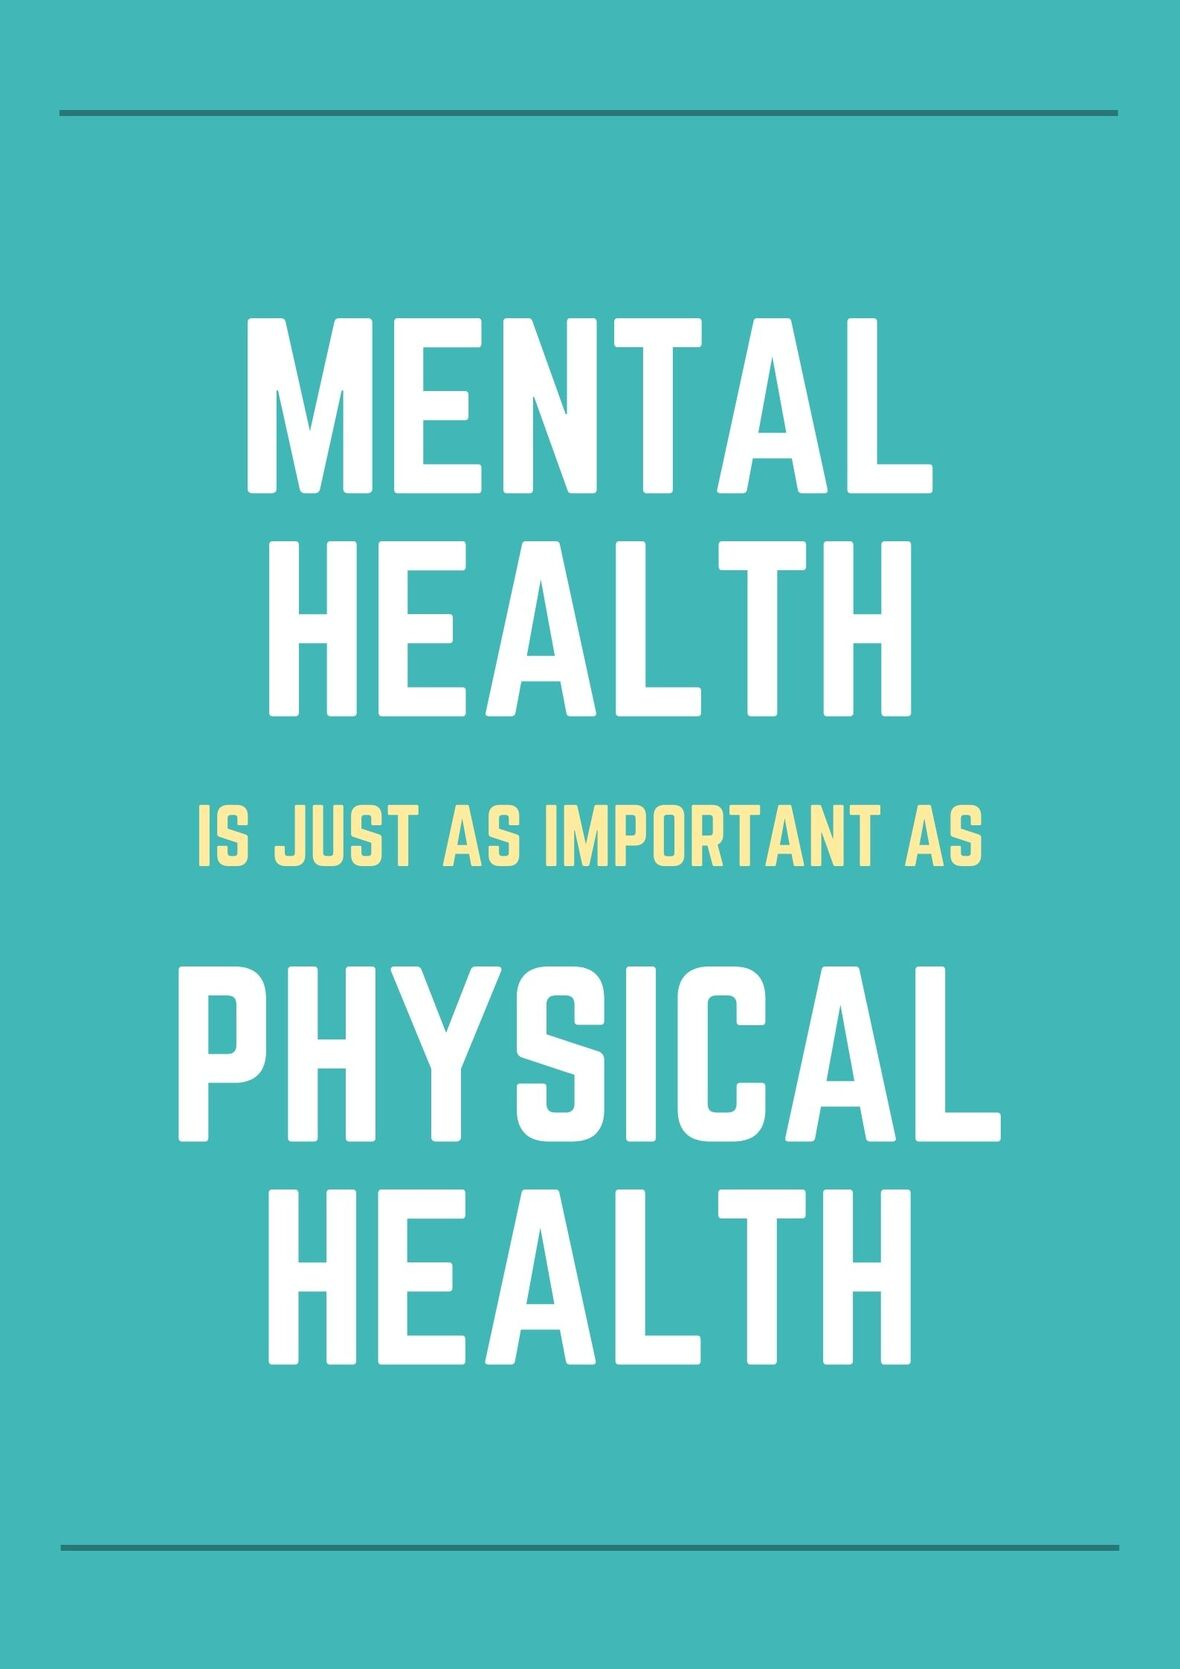 Green Yellow and White Mental Health Poster